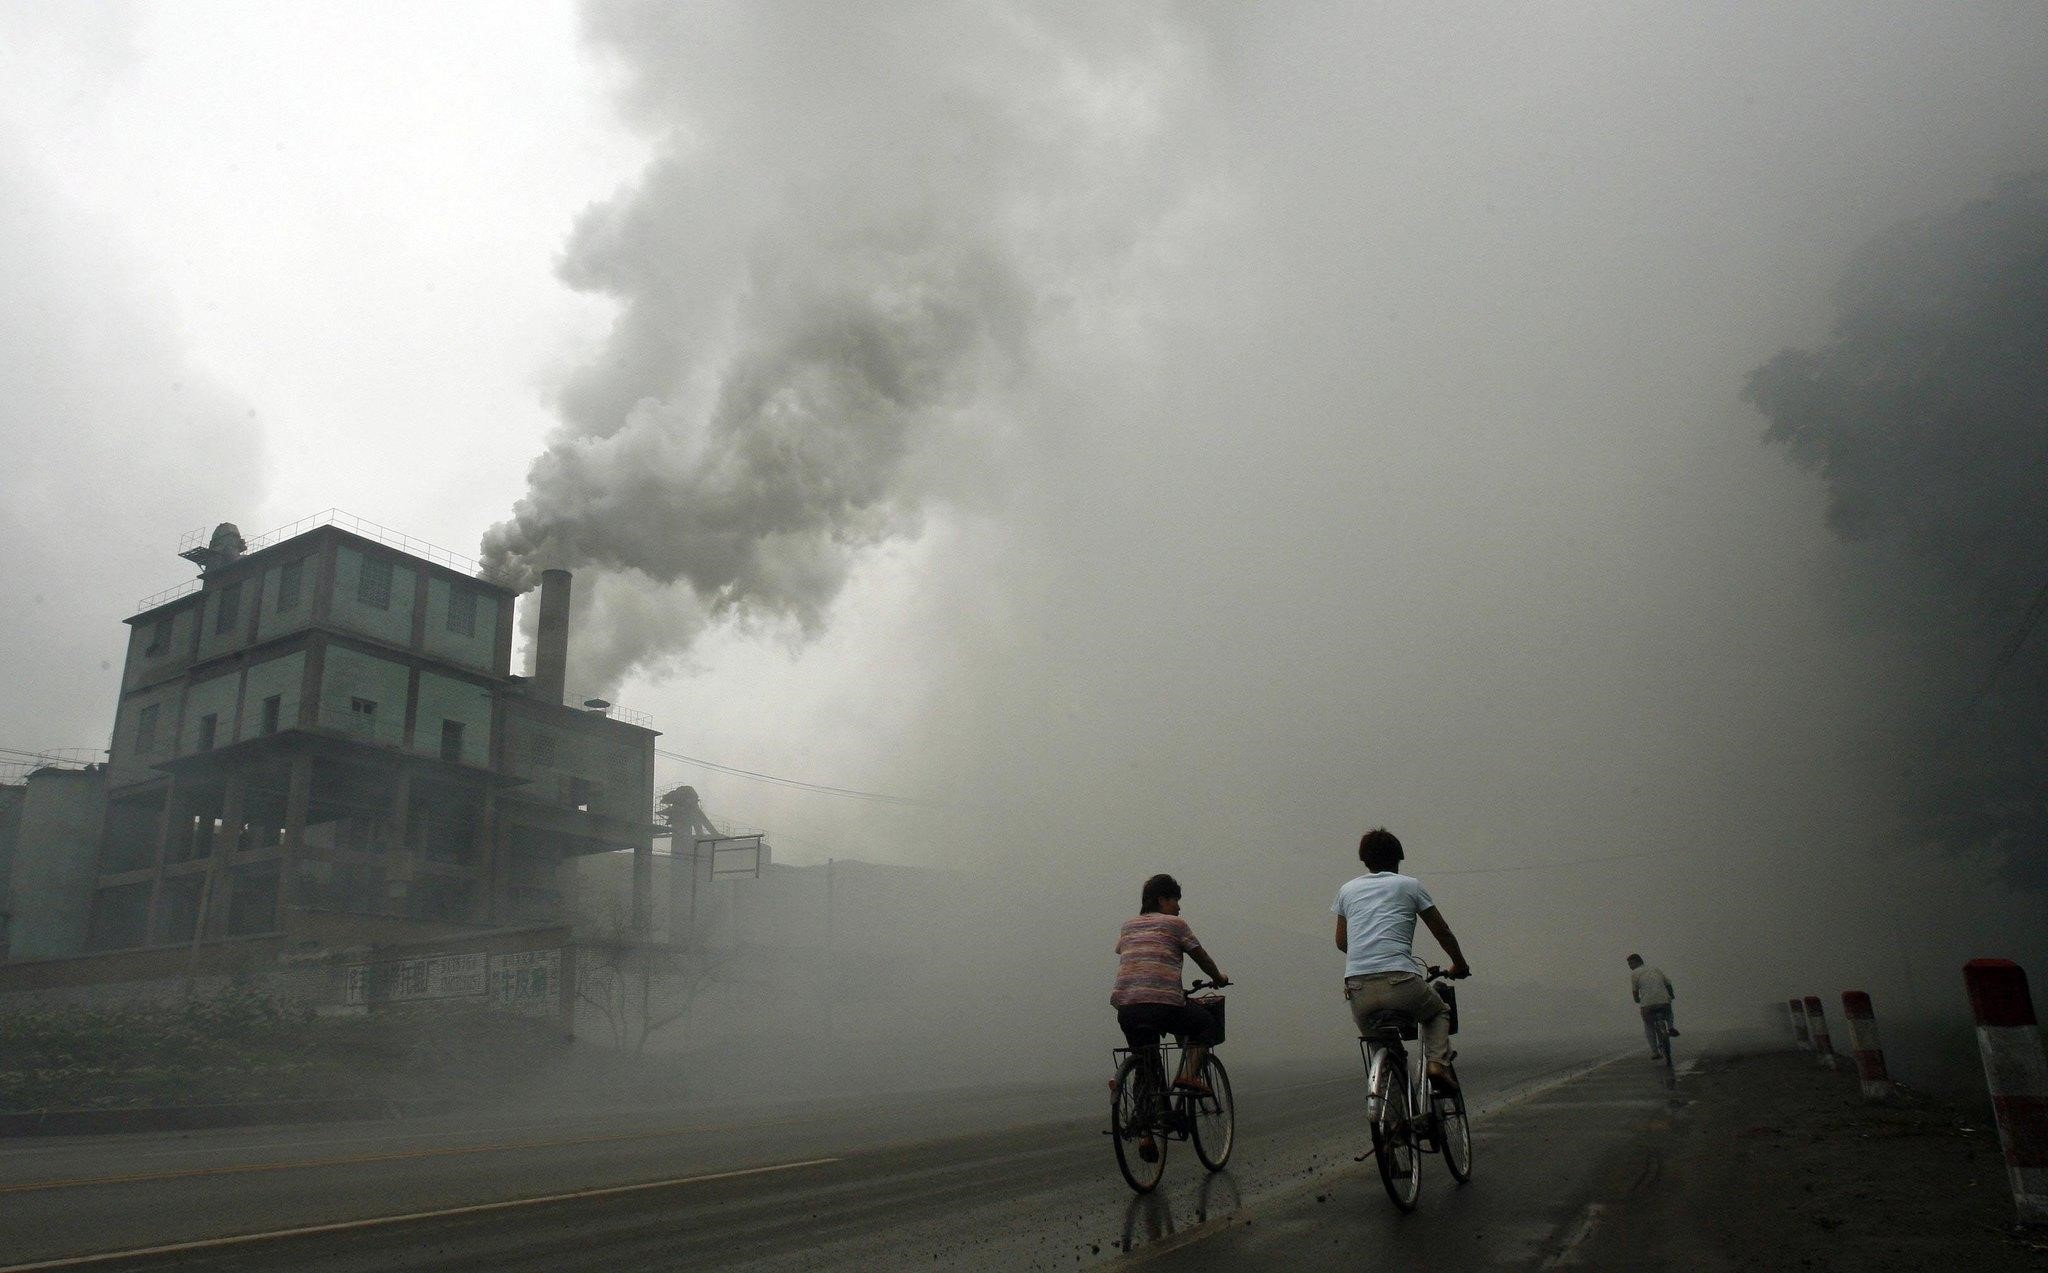 China's industry exporting air pollution to U.S., study says - latimes